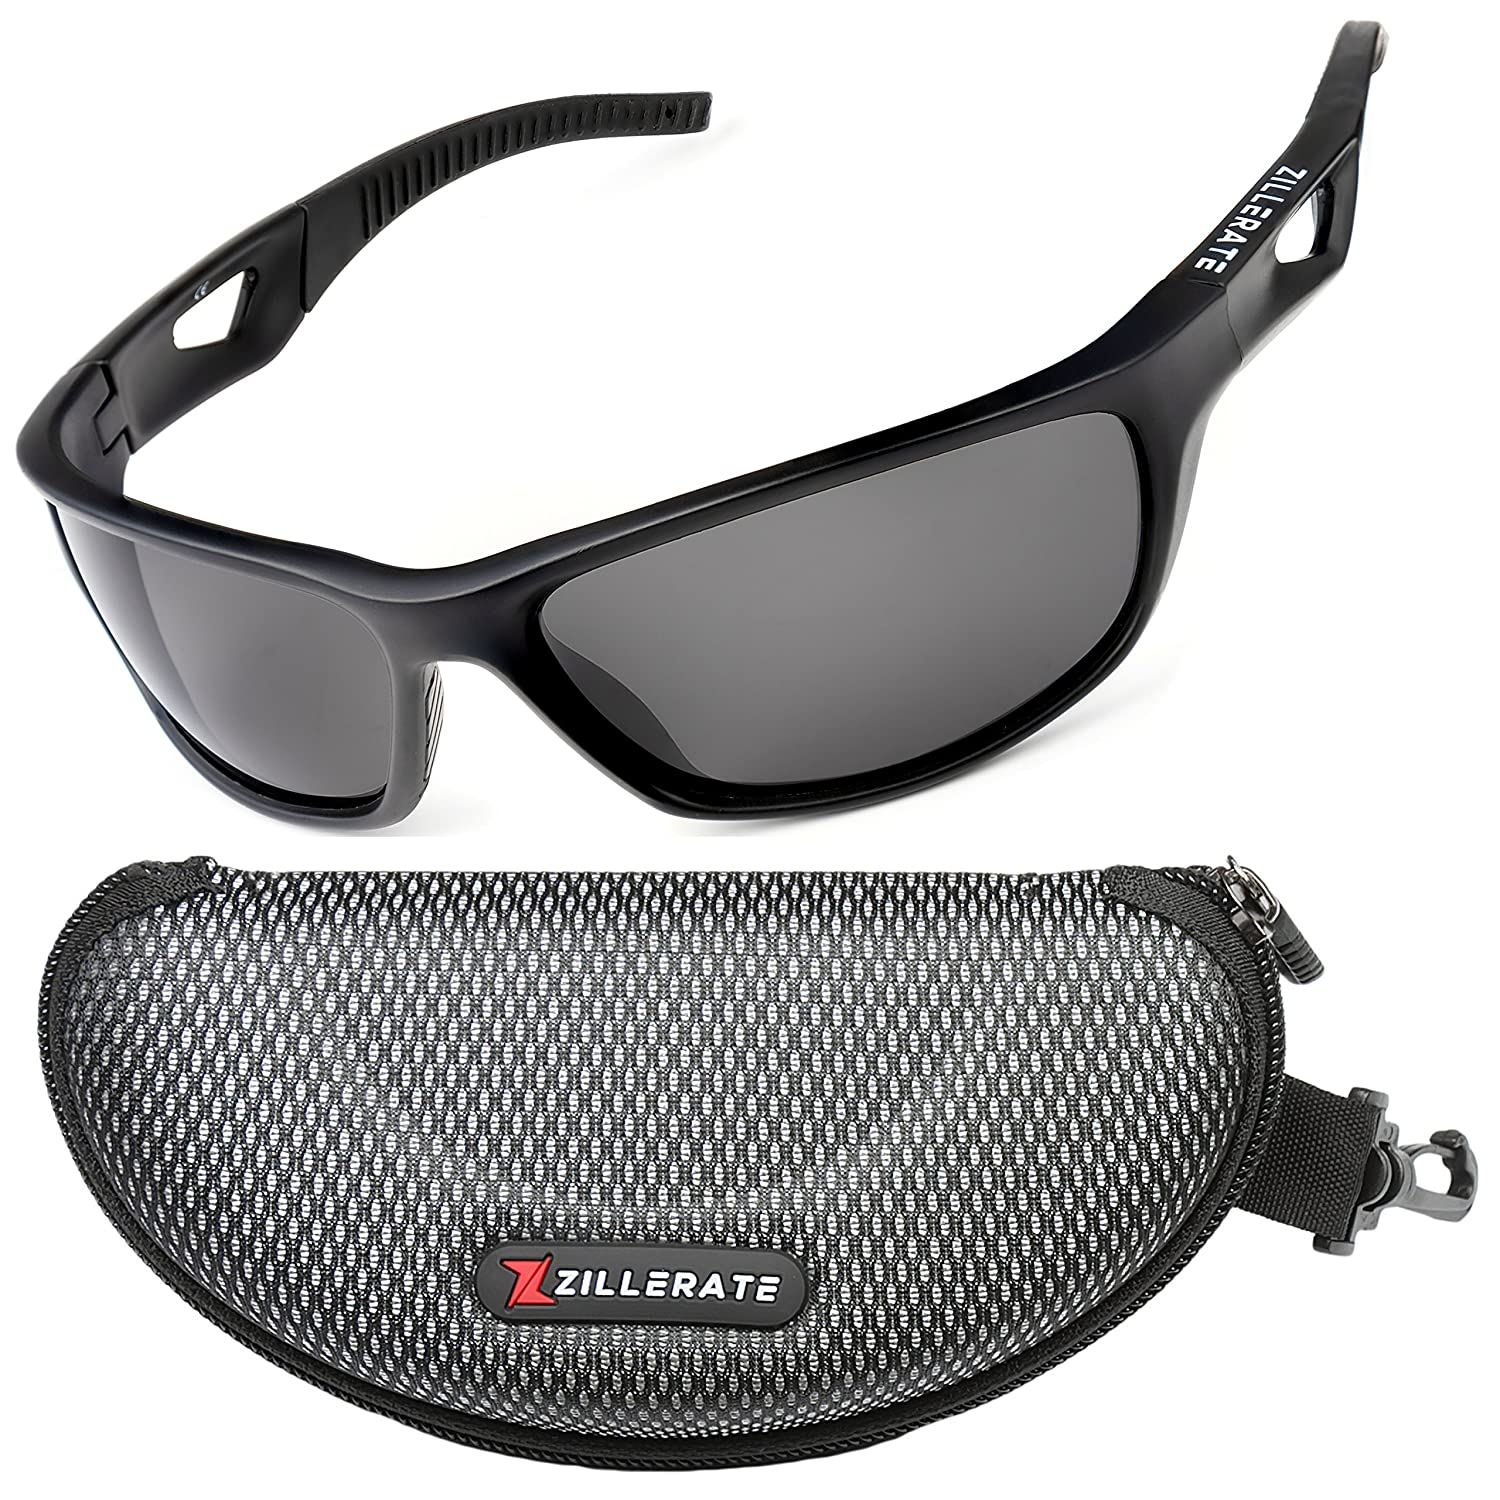 7815d802f9a ZILLERATE Mens Womens Polarized Sports Sunglasses - UV400 Protection ...